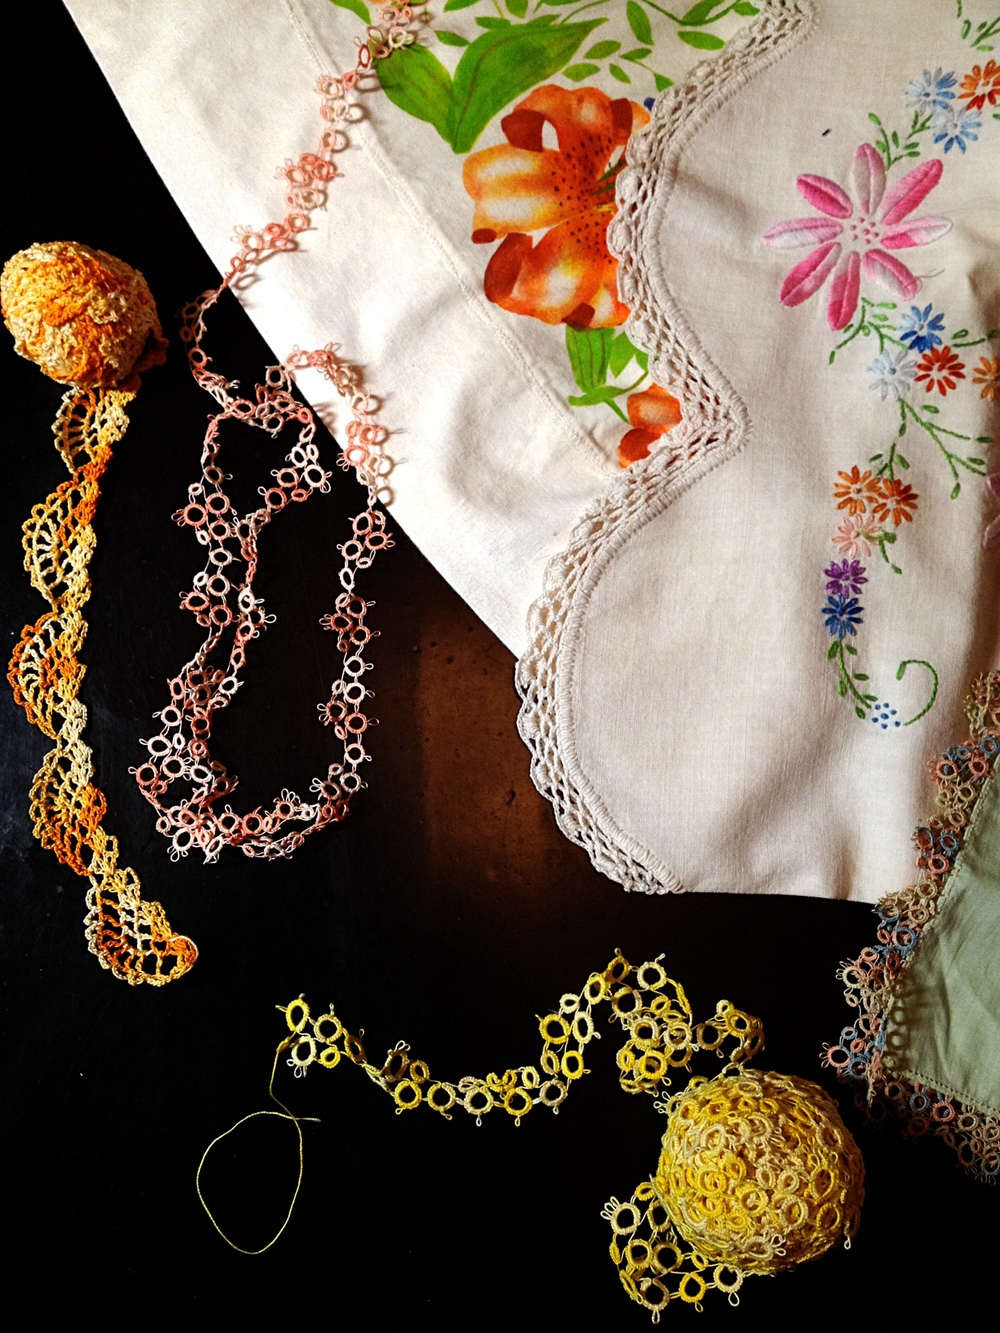 Hand painted pillowcase, embroidered pillowcase, handkerchief with tatting edging . -Irene Mestmaker circa 1940 & Peggy Goza circa 1973